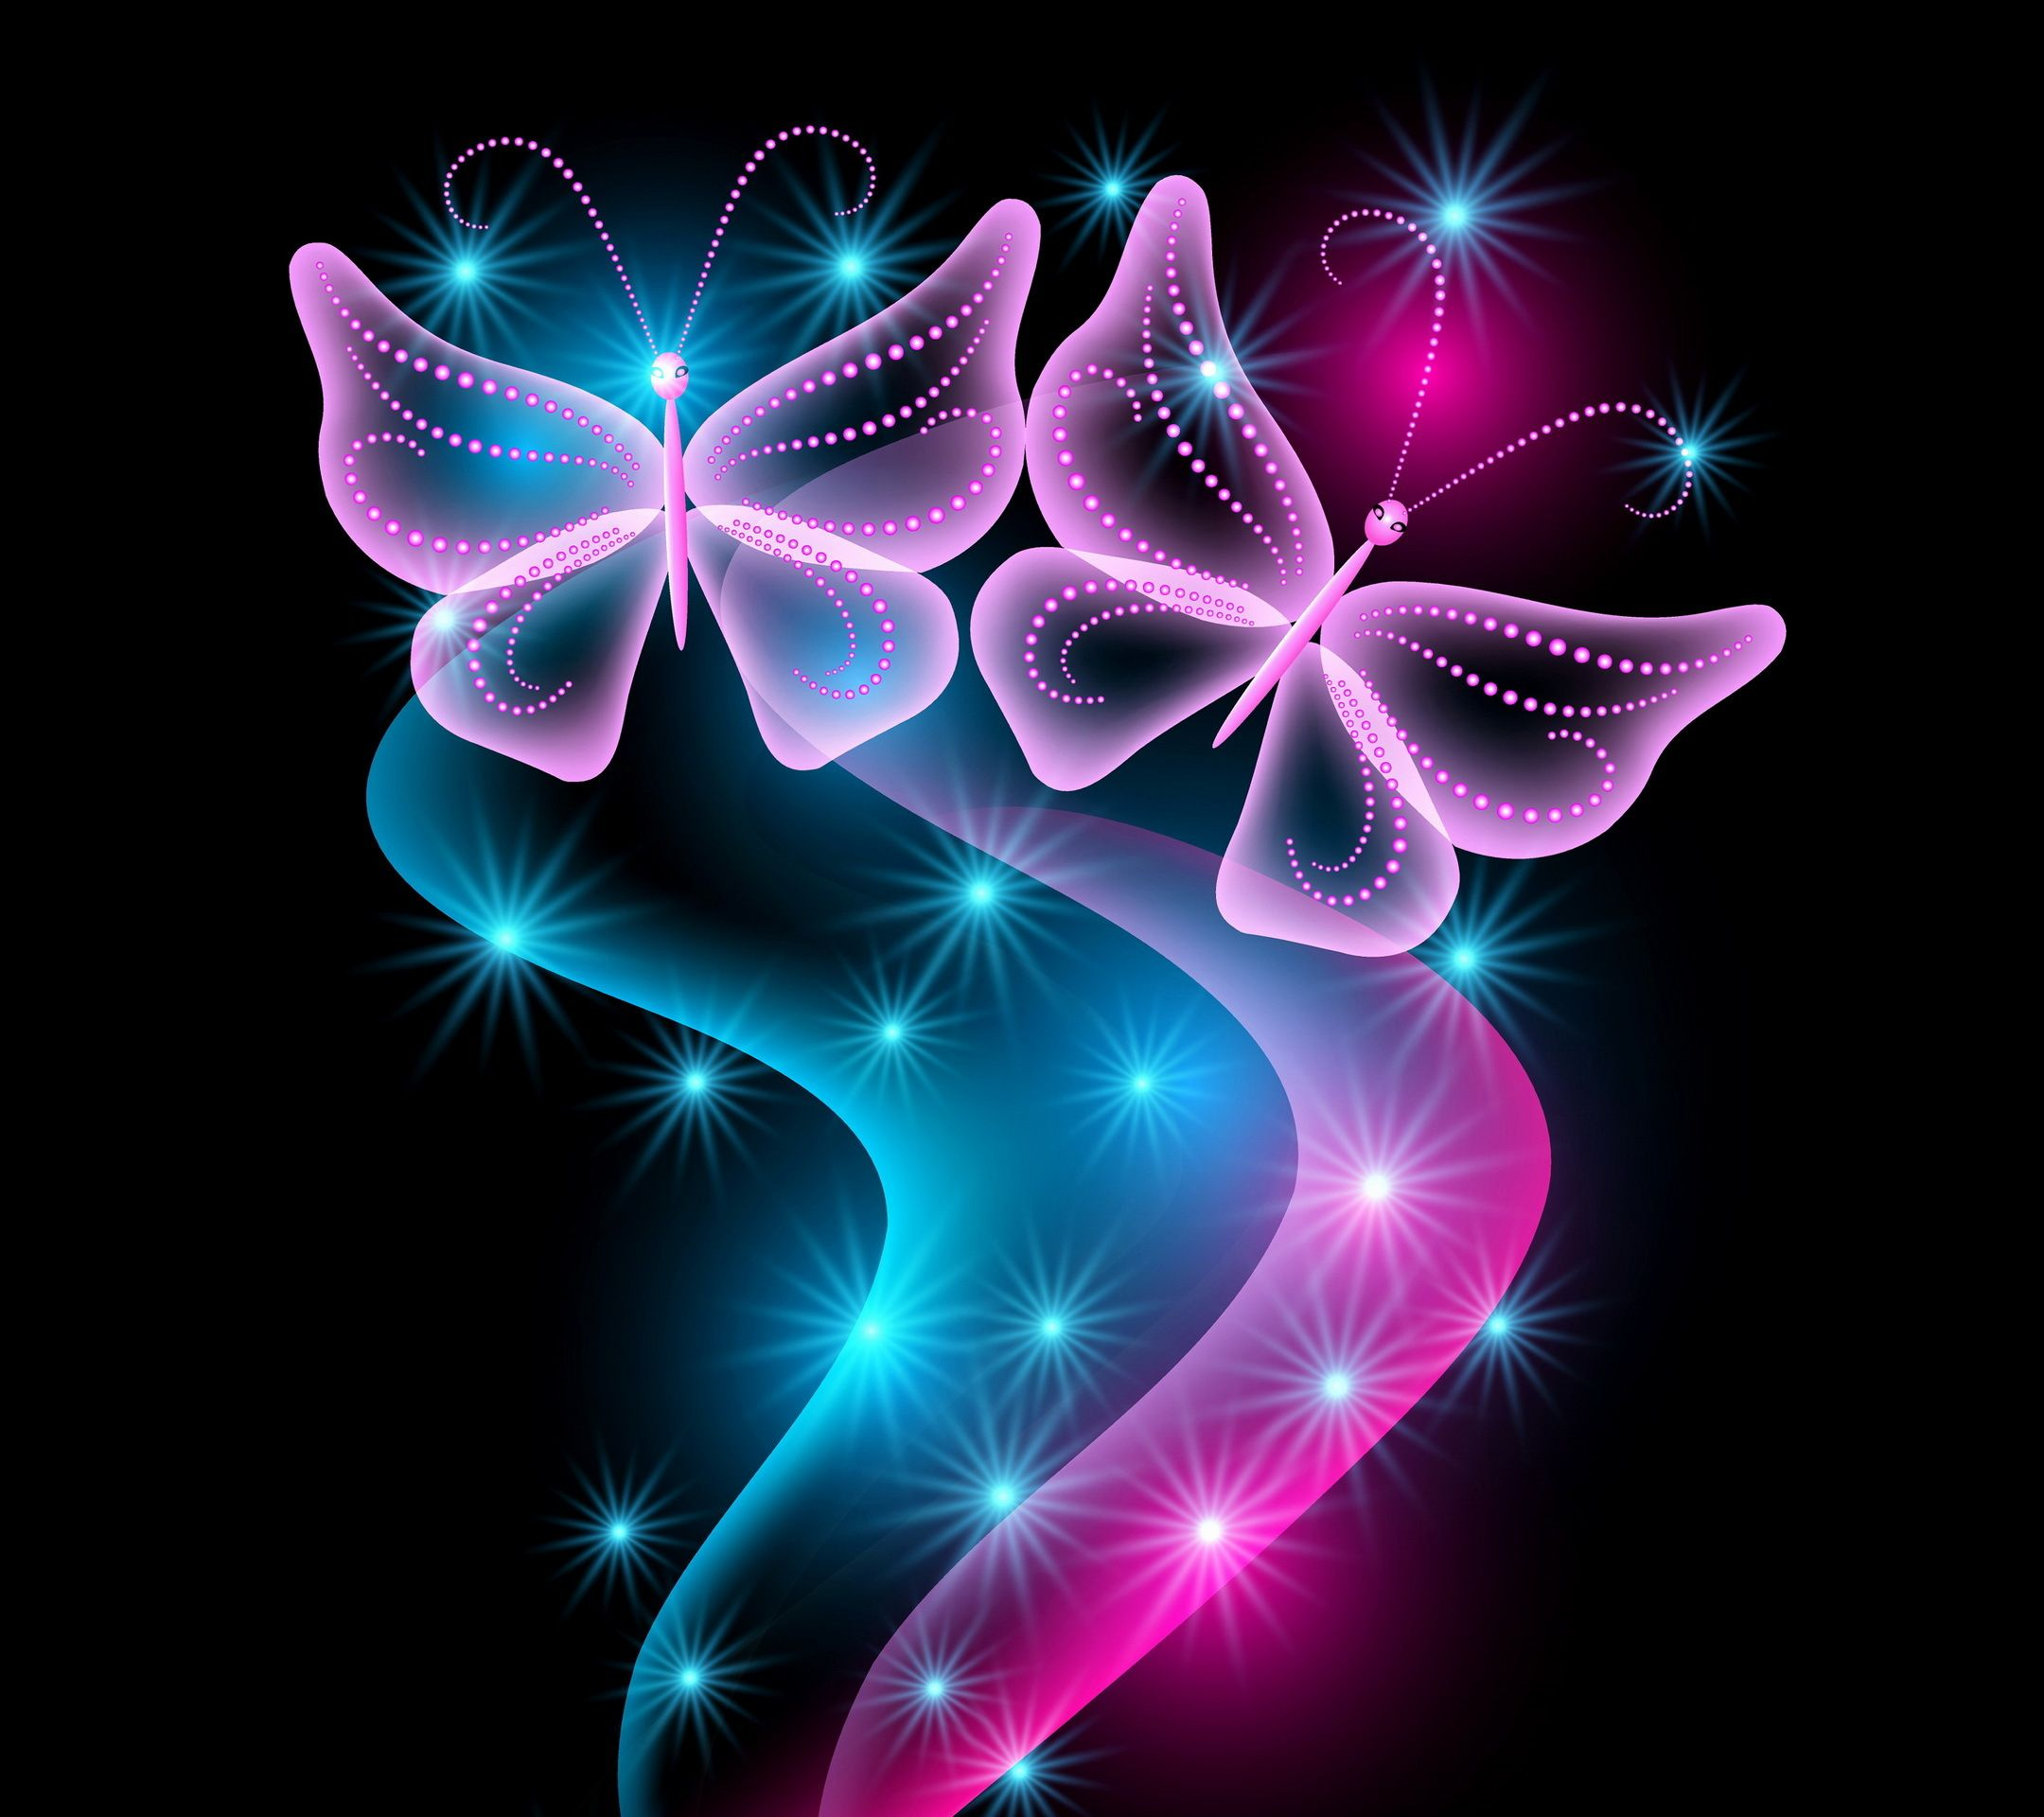 Wallpaper Neon Butterflies Abstract Blue Pink Sparkle Glow Butterfly Wallpapers Abstr Butterfly Wallpaper Backgrounds Butterfly Wallpaper Neon Wallpaper